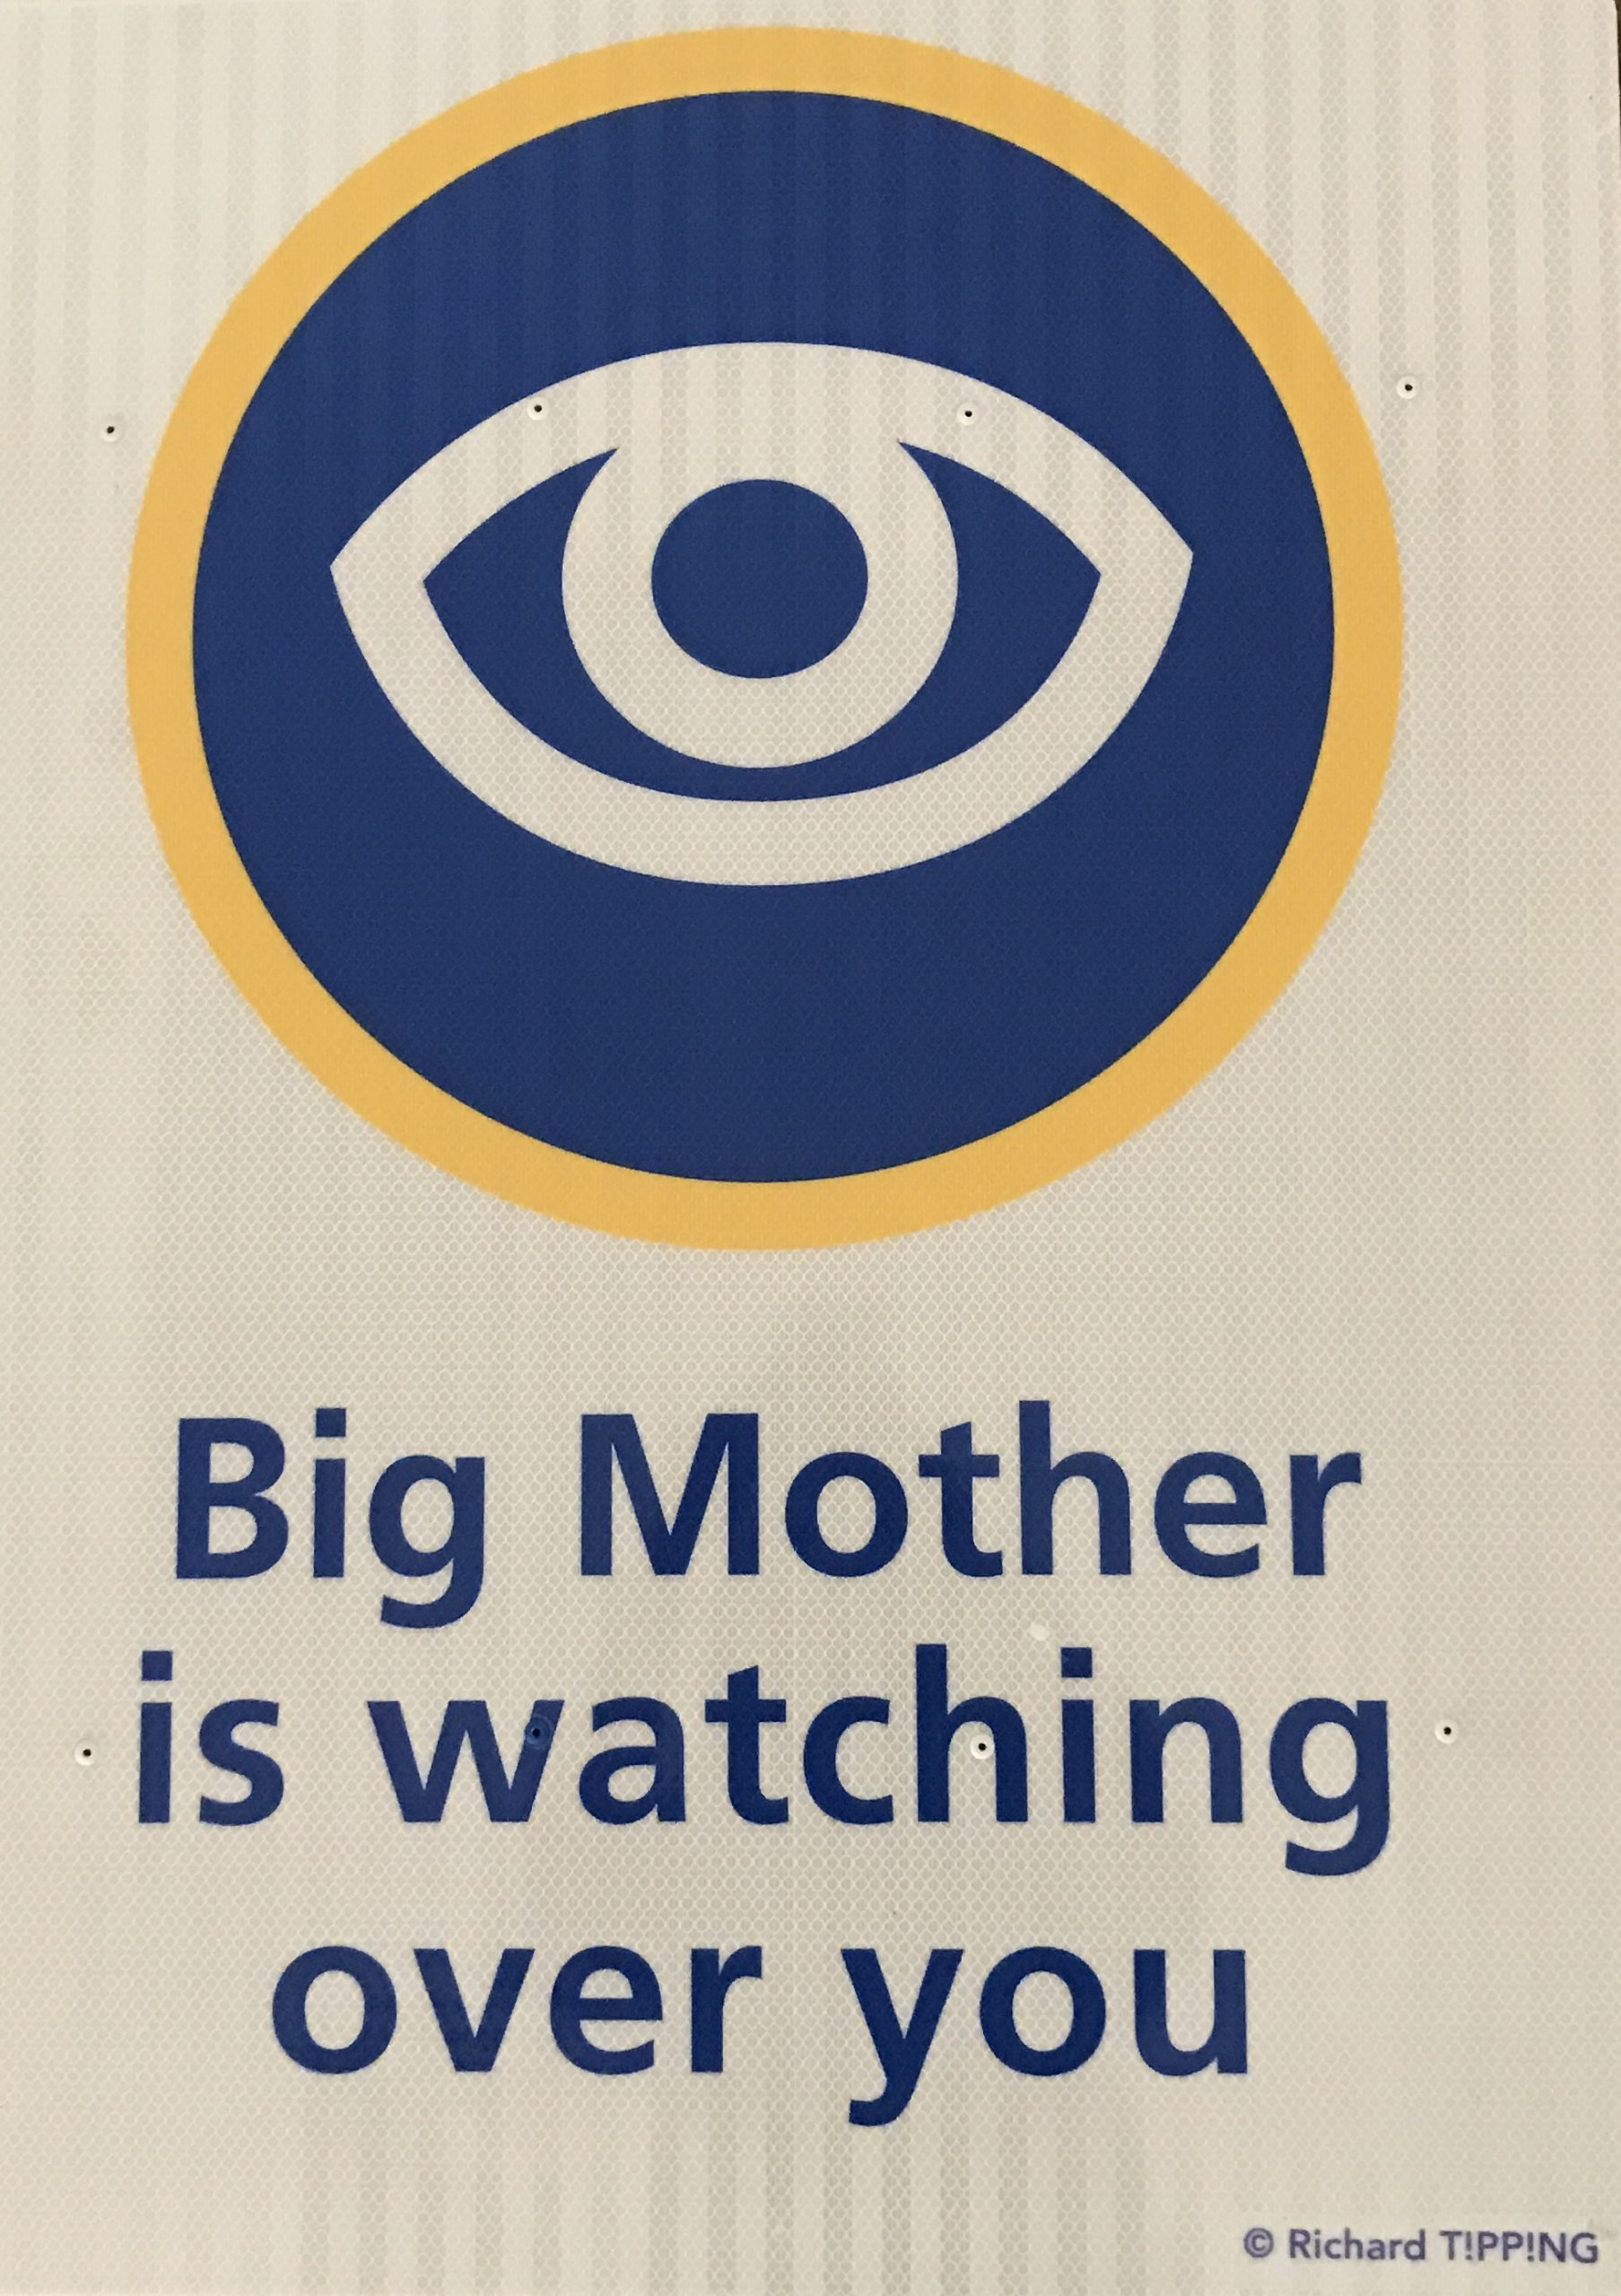 Big Mother is watching over you